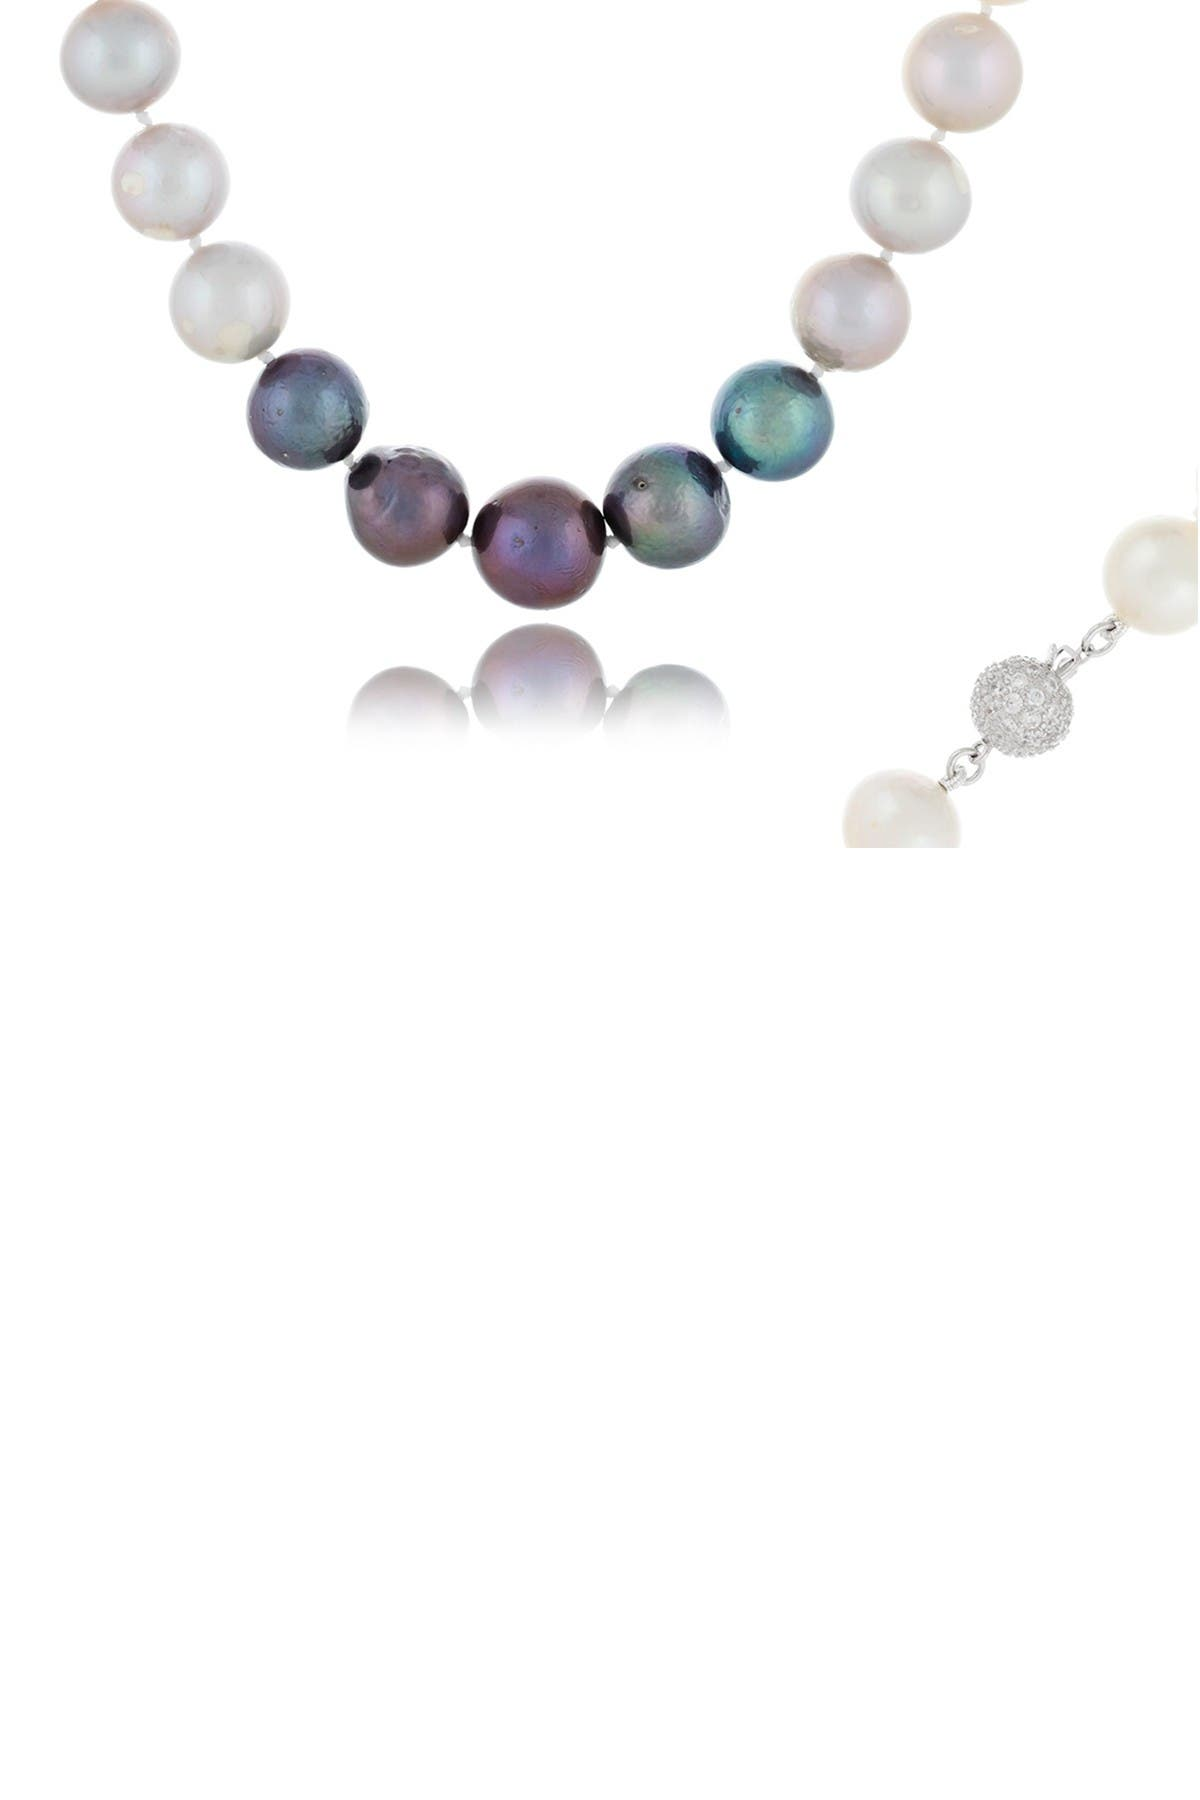 Image of Splendid Pearls Sterling Silver 11-14mm Ombre Freshwater Pearl Necklace